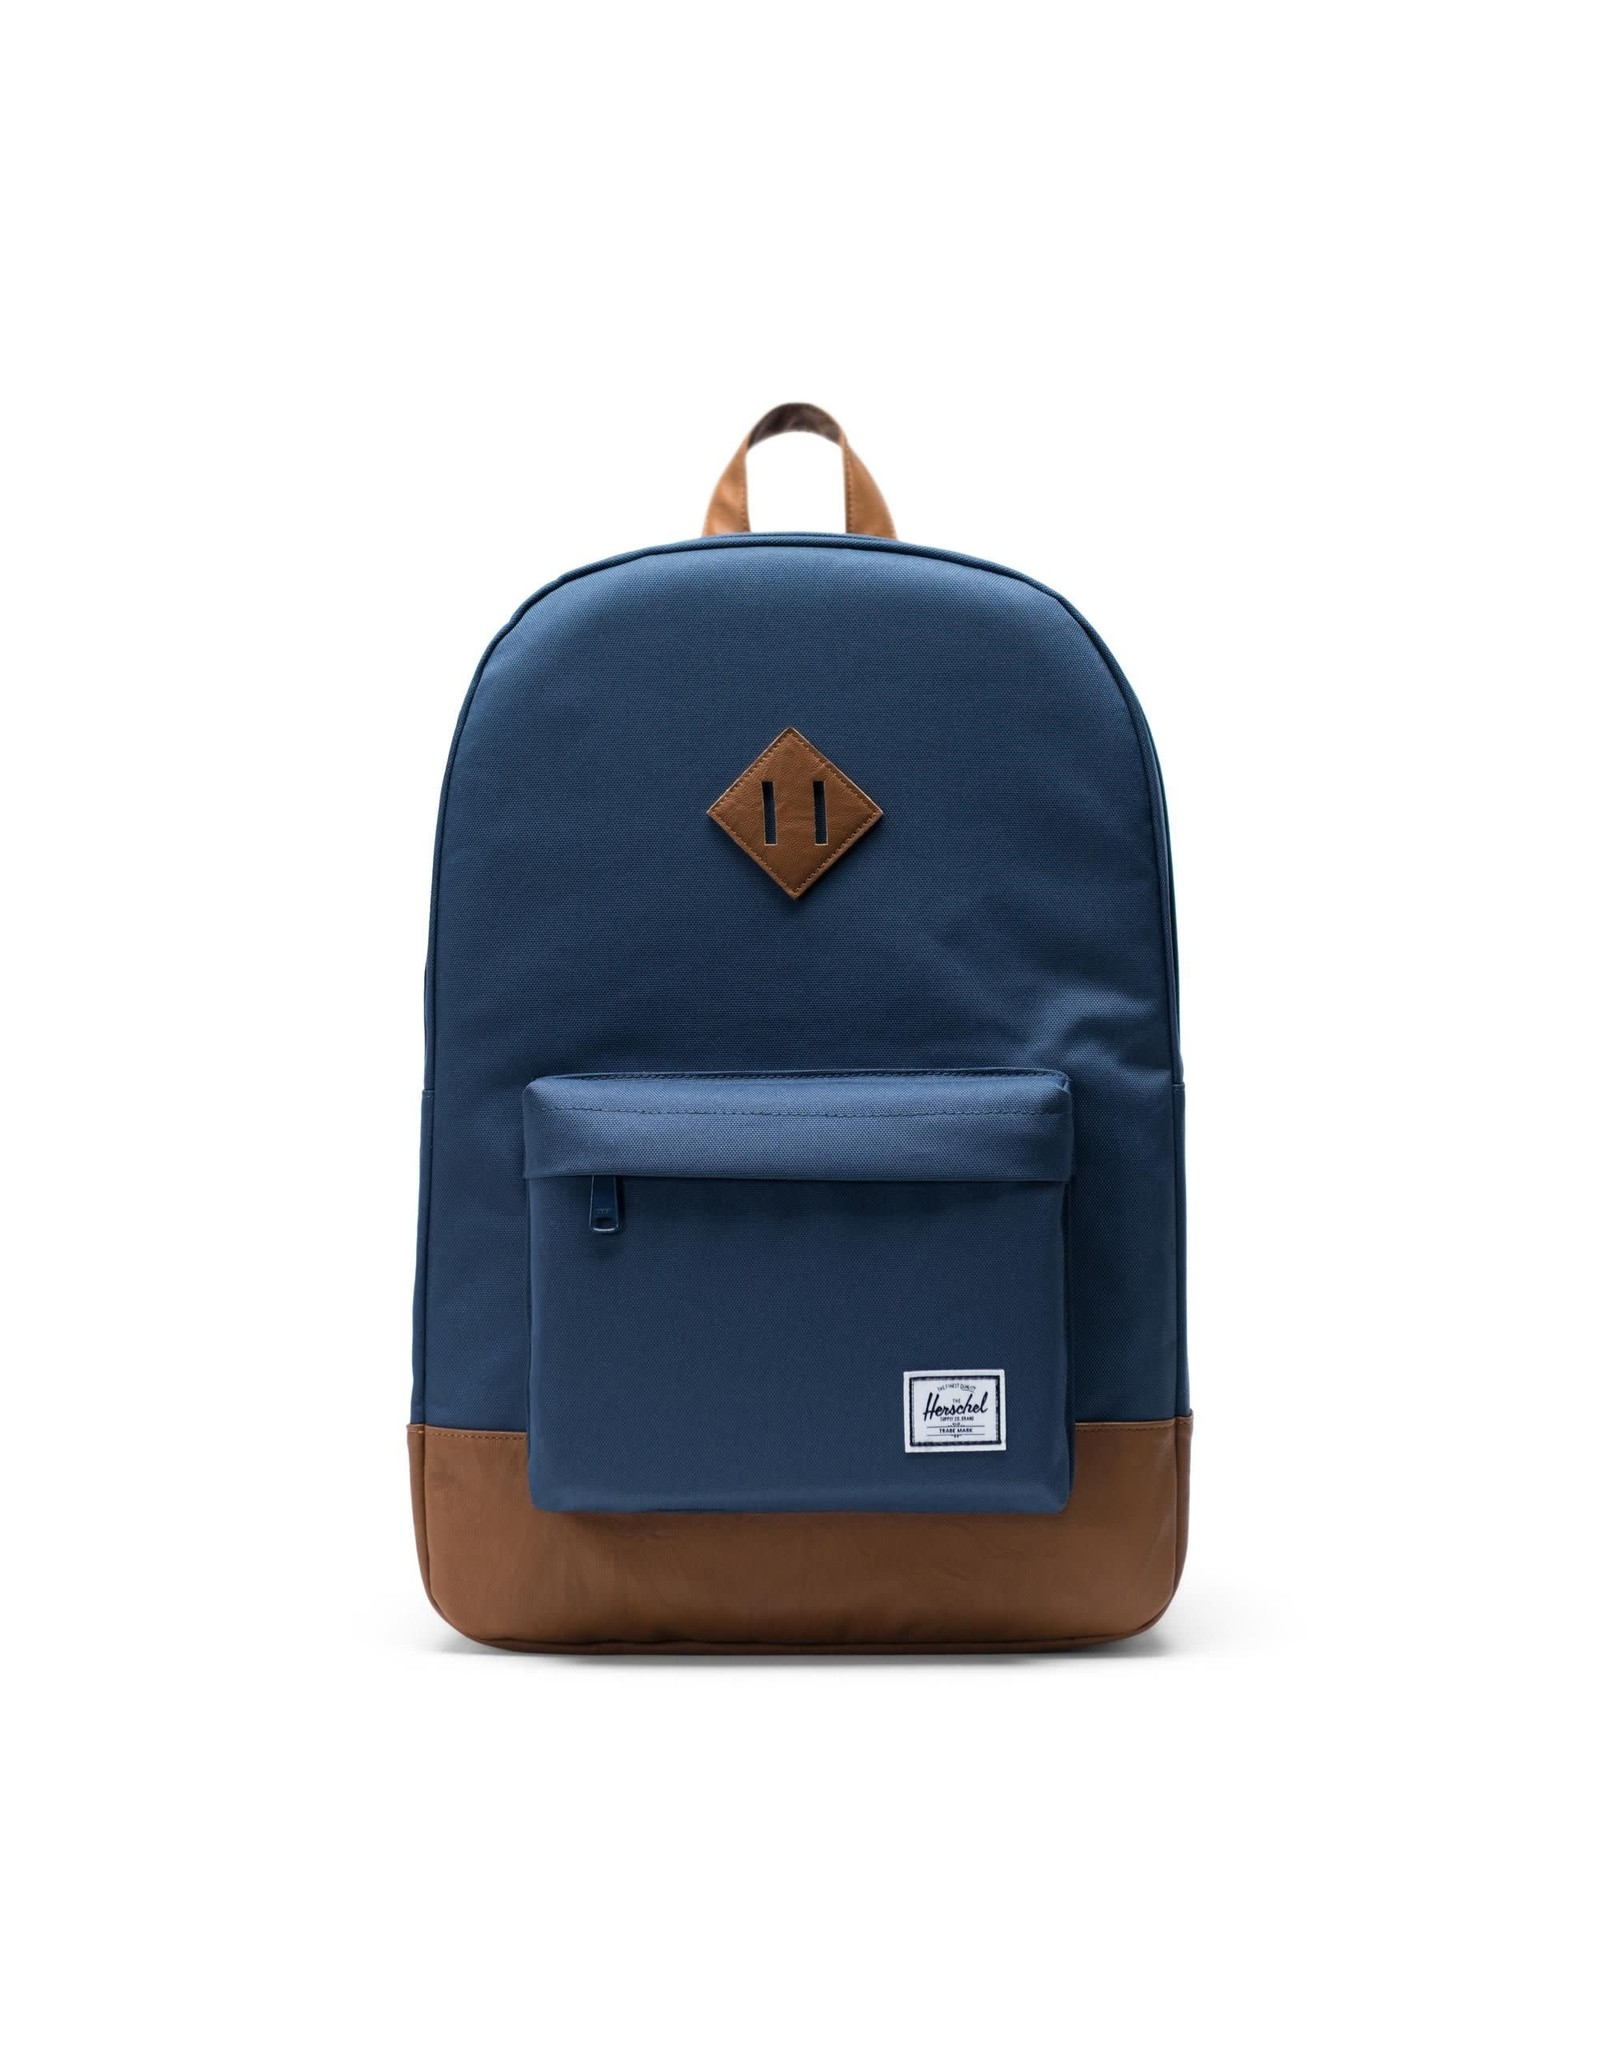 herschel Herschel - Sac à dos heritage navy/tan synthetic leather